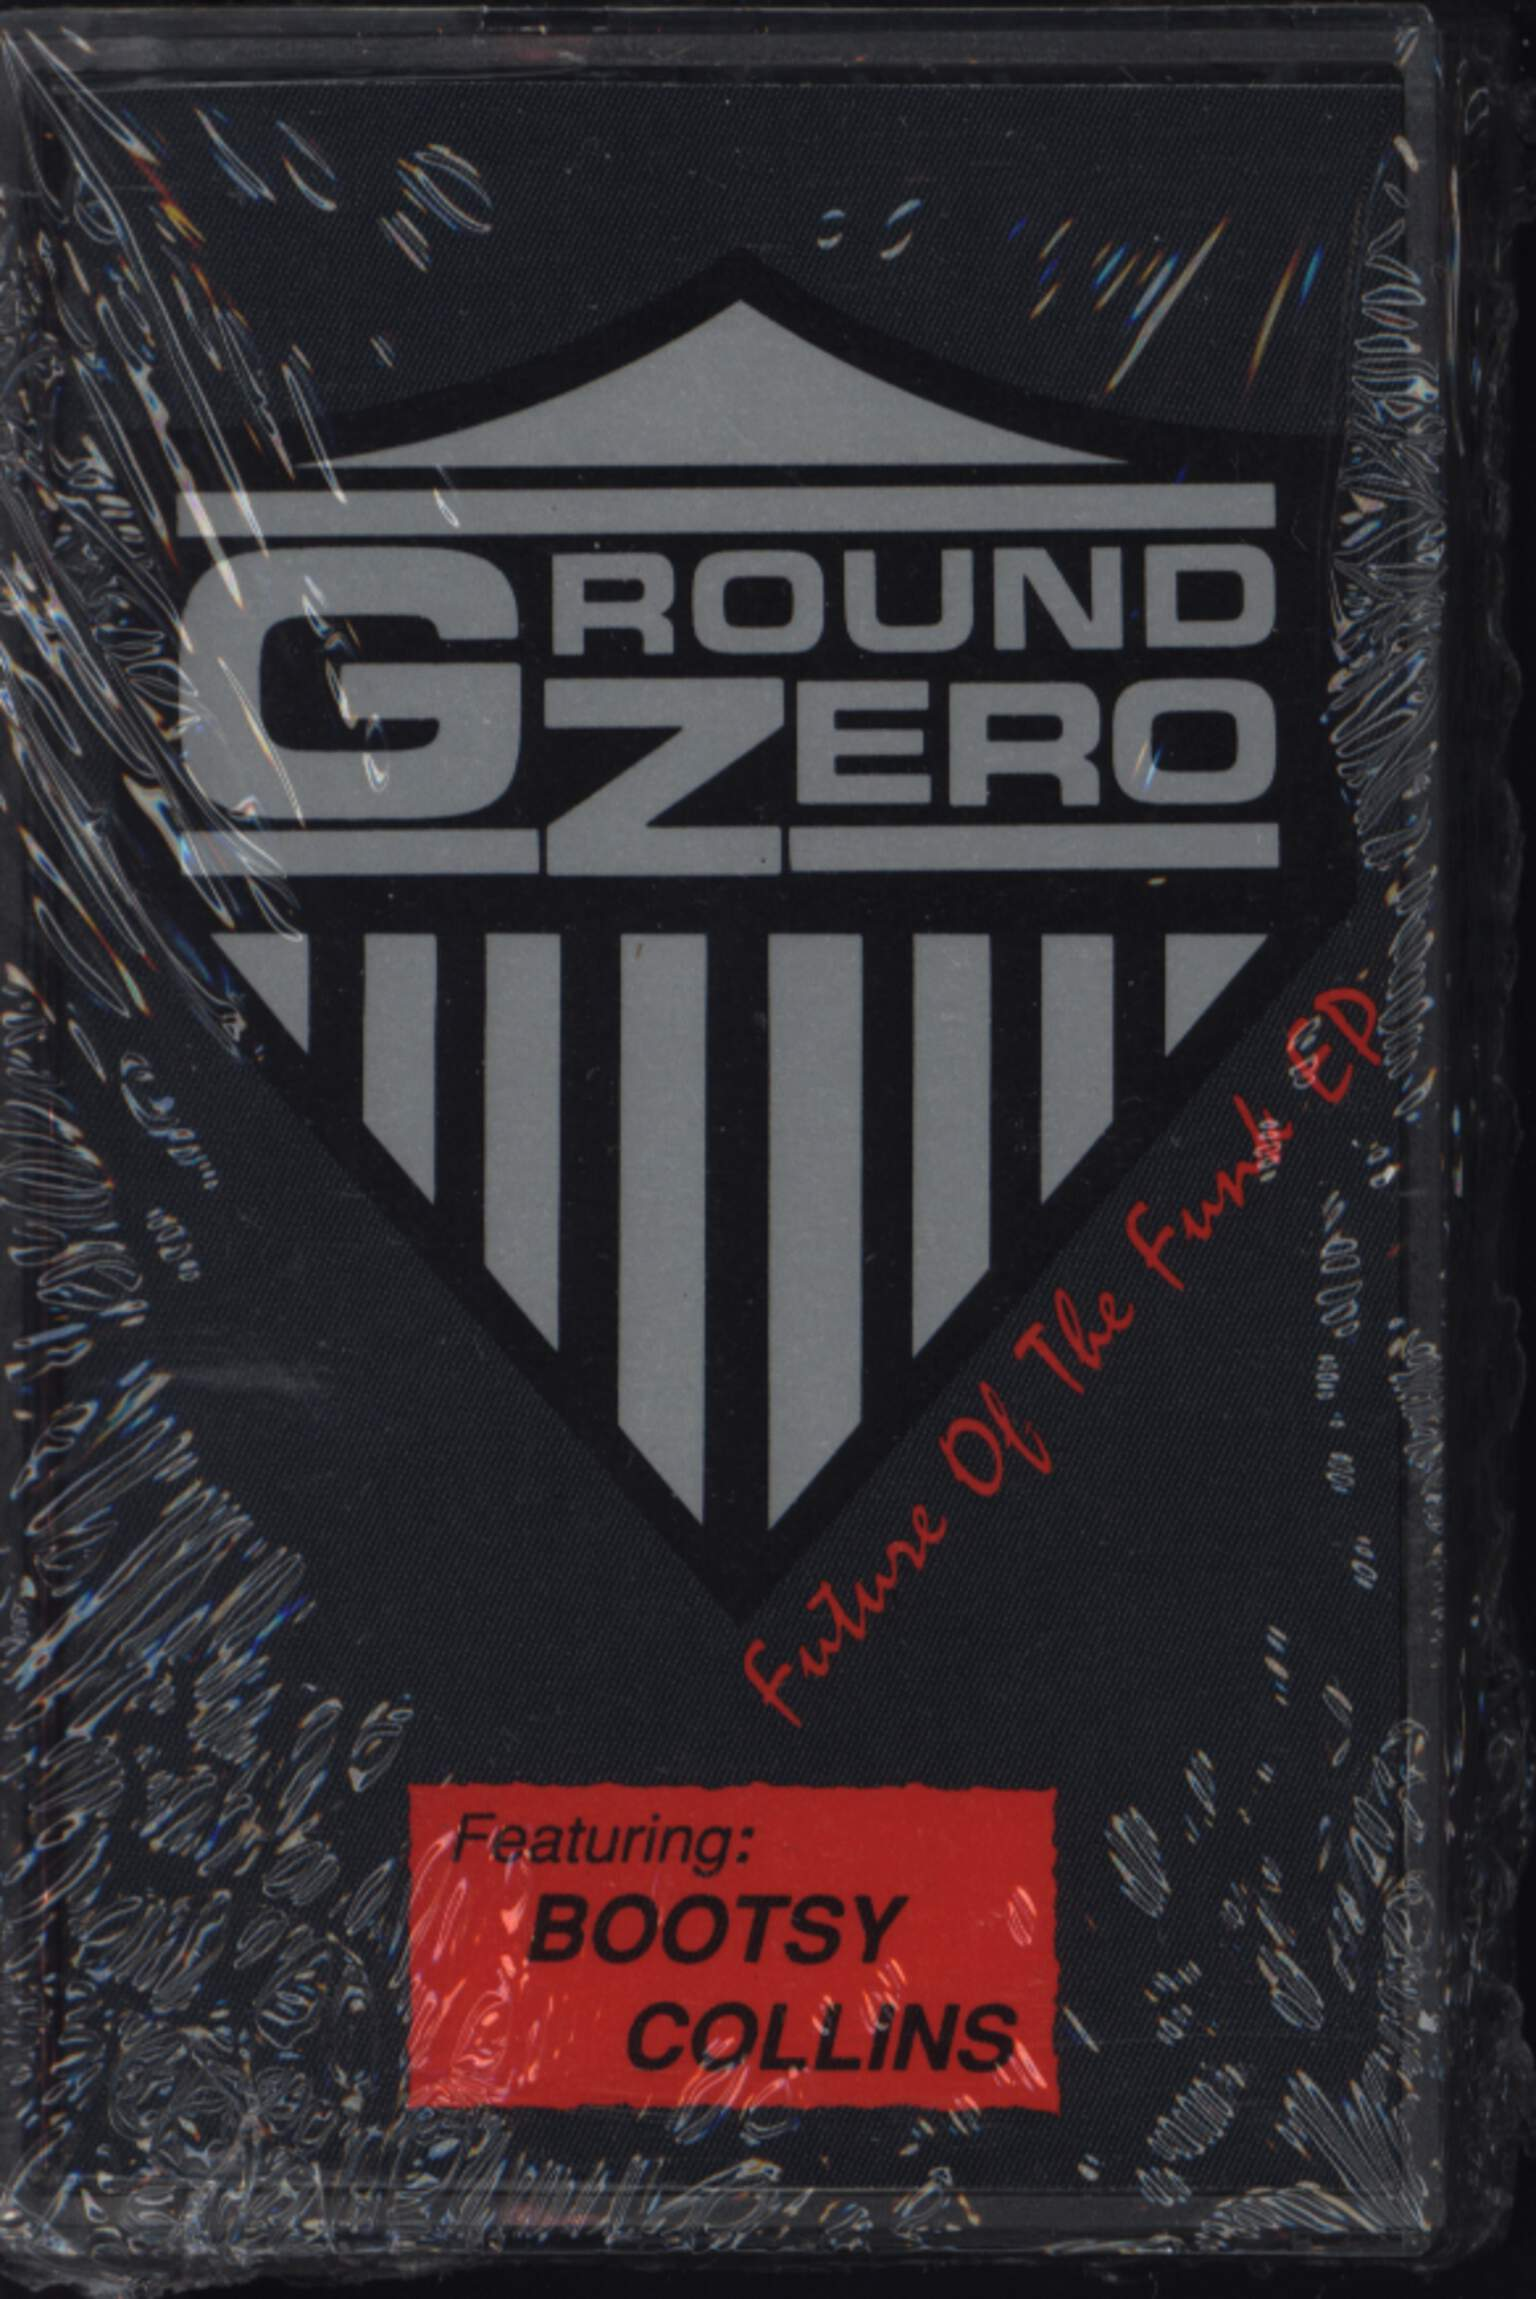 Ground Zero: Future Of The Funk EP, Compact Cassette